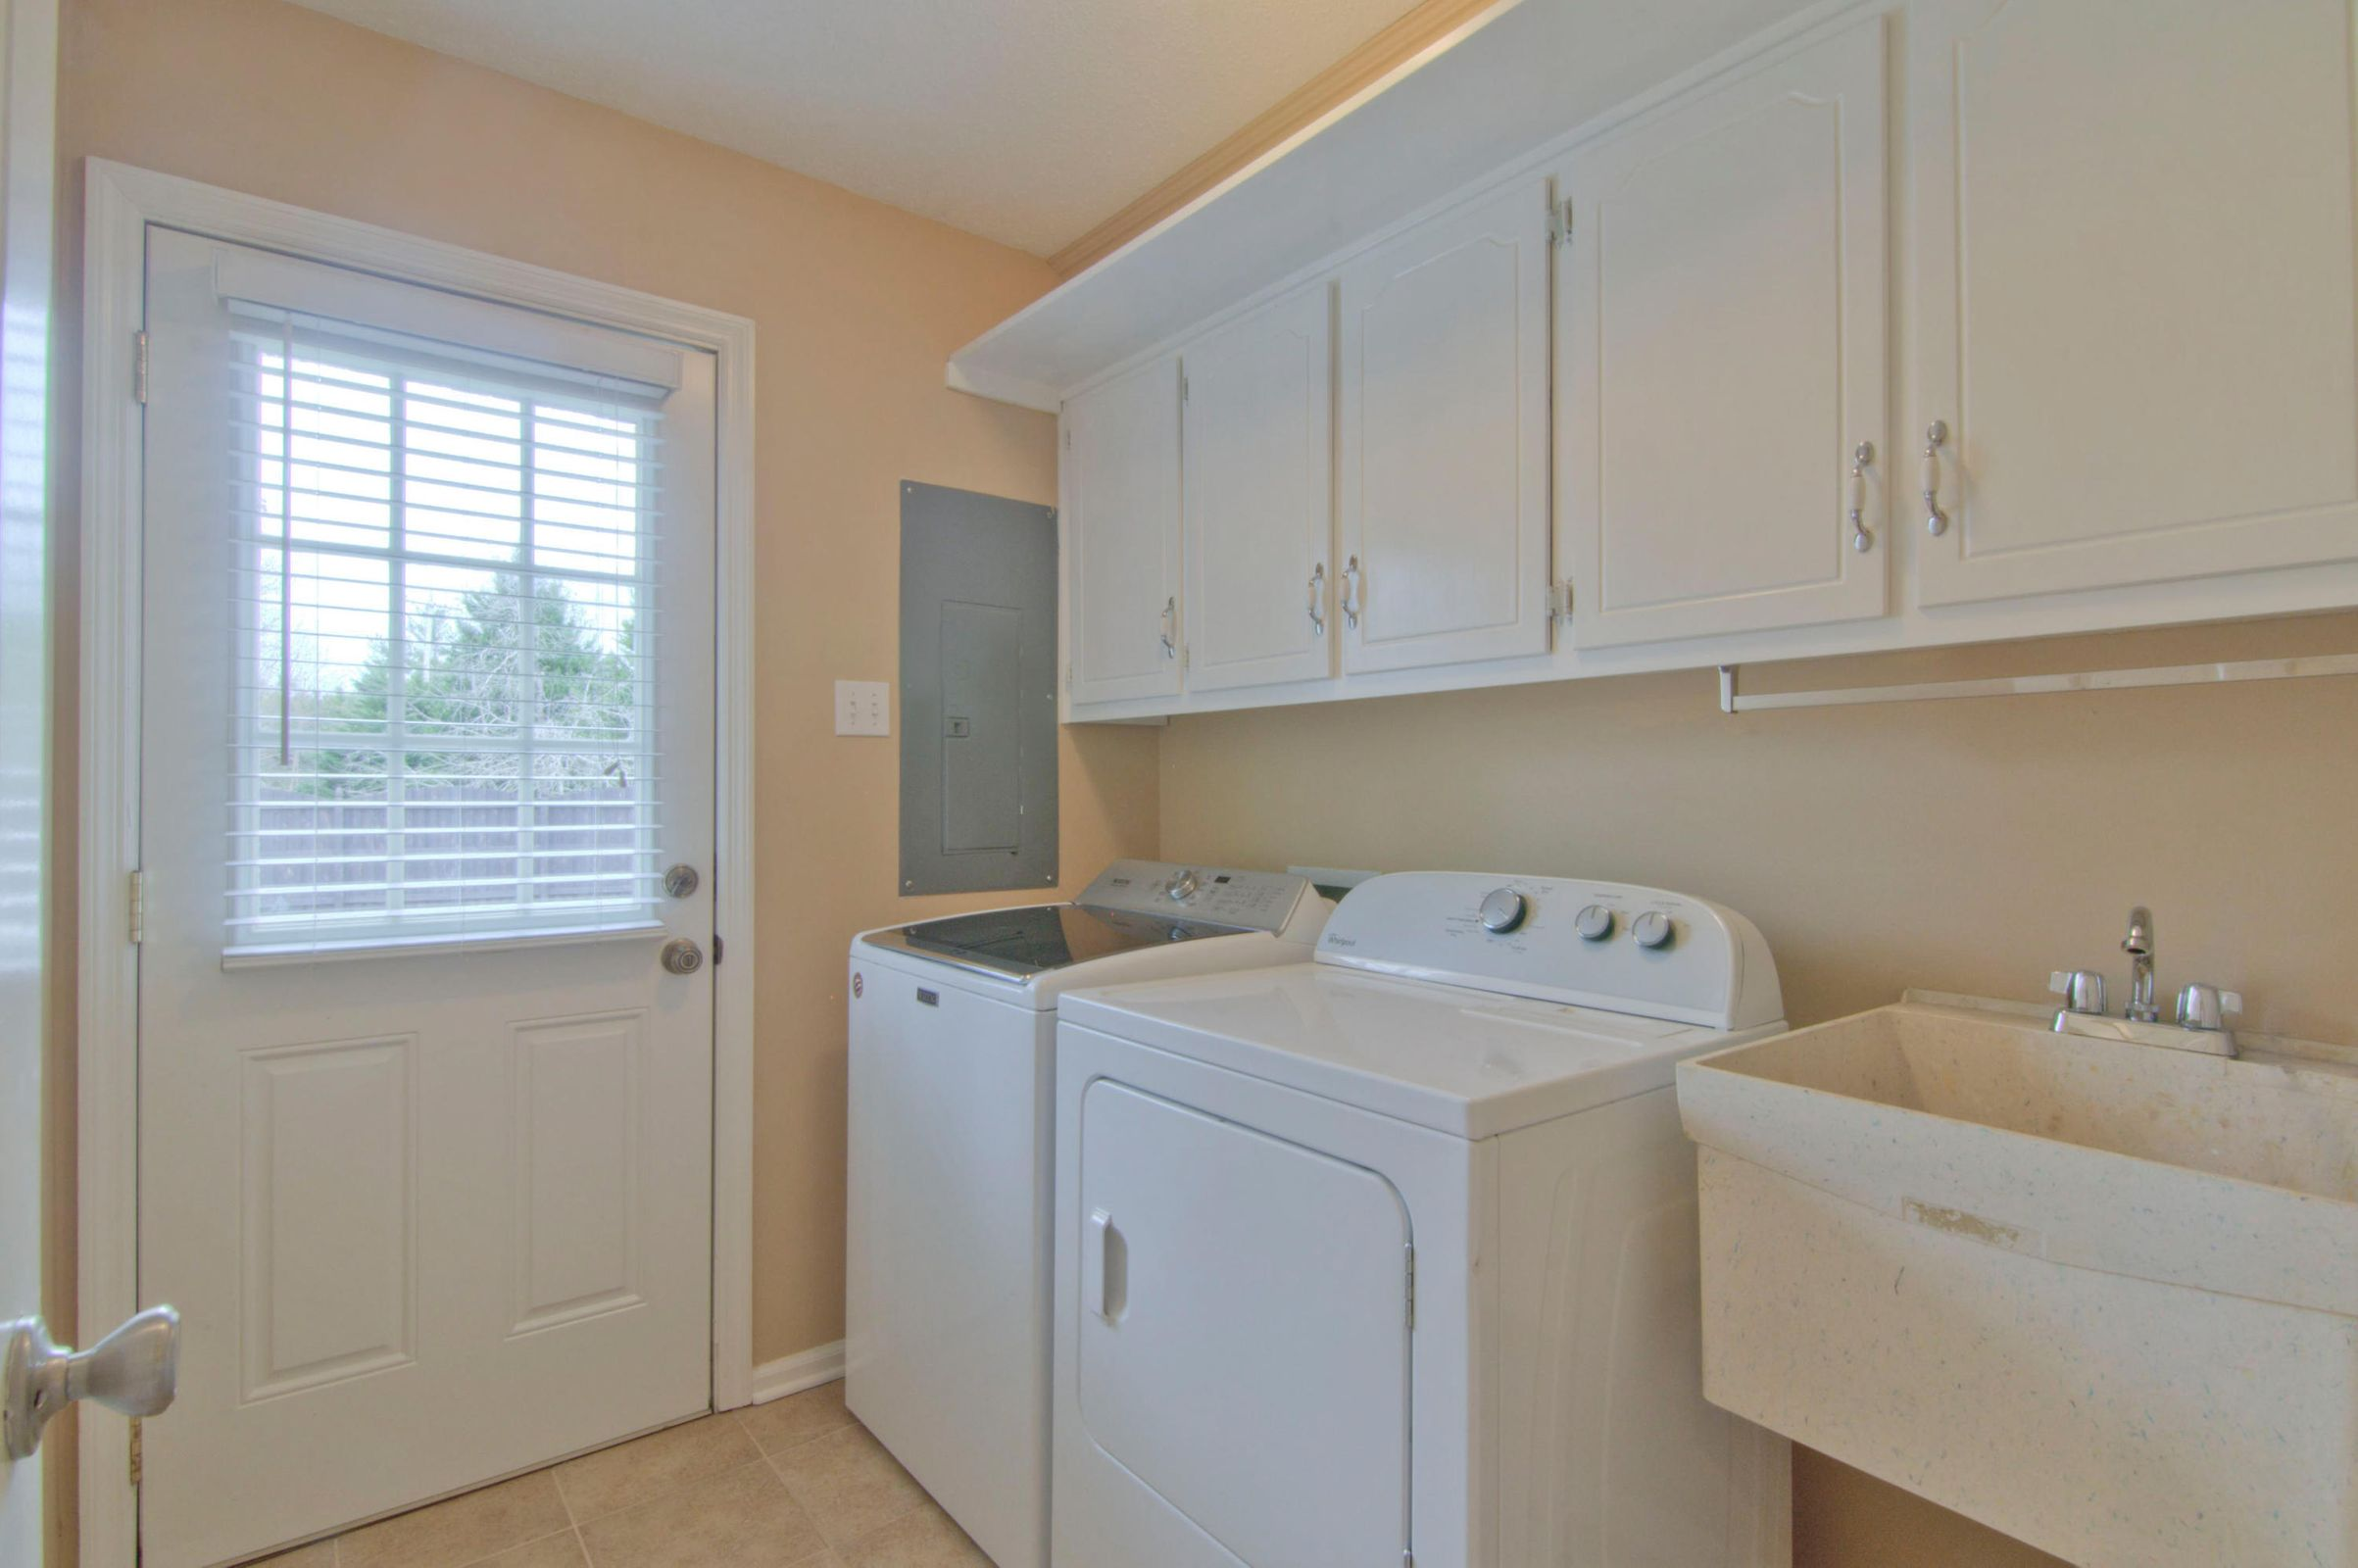 LAUNDRY RM HAS CABINETS & OUTSIDE ENTRY